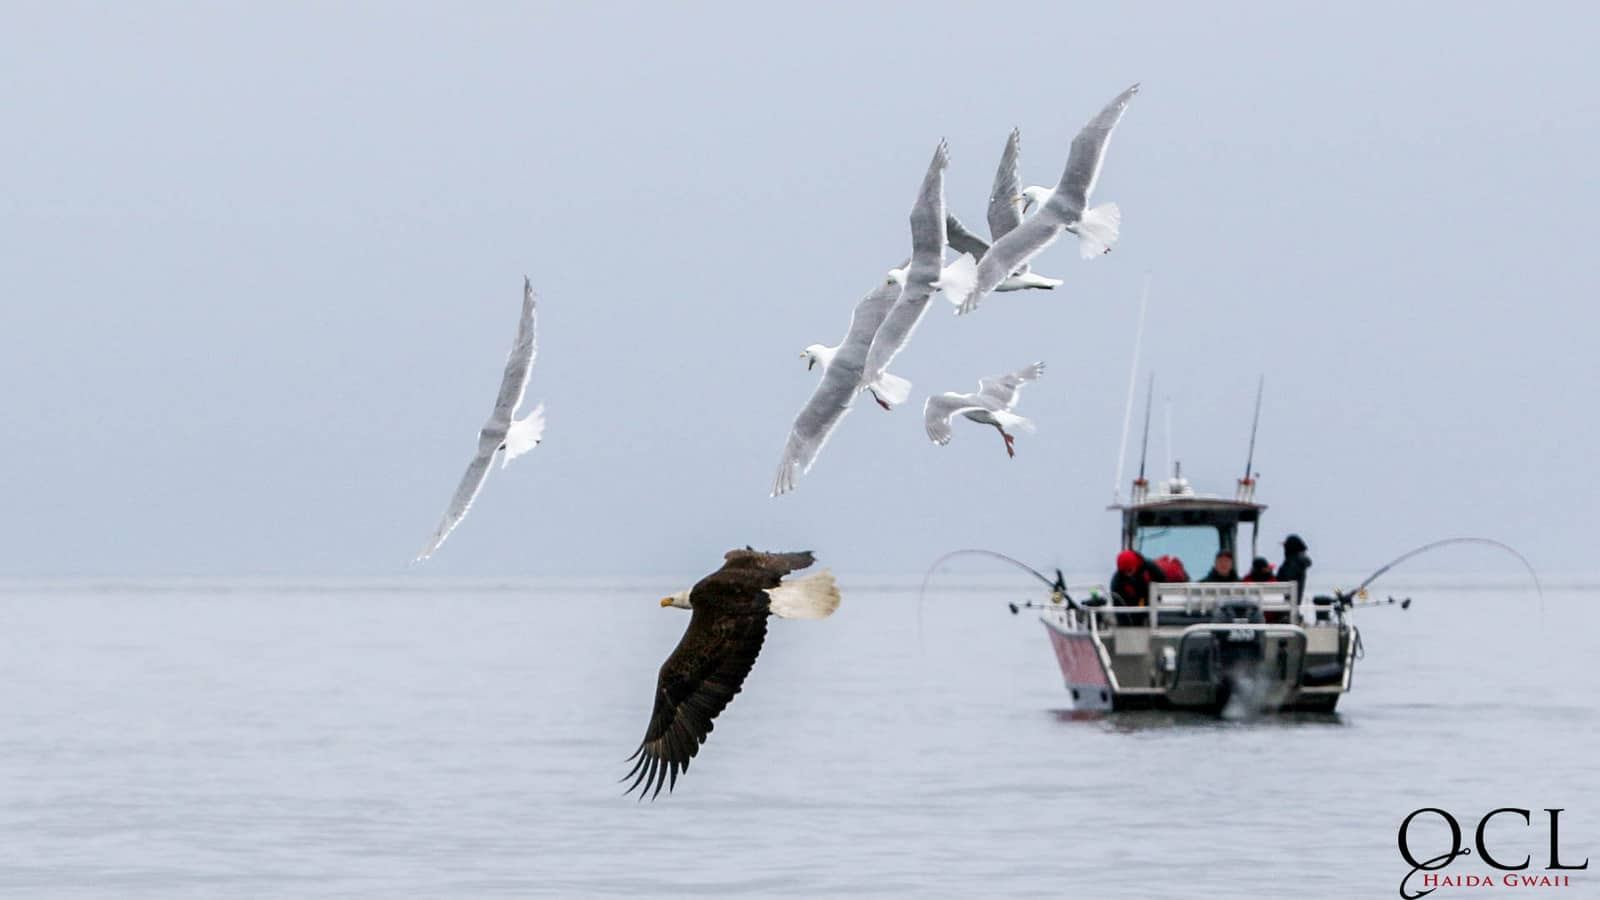 Eagle soaring above the ocean